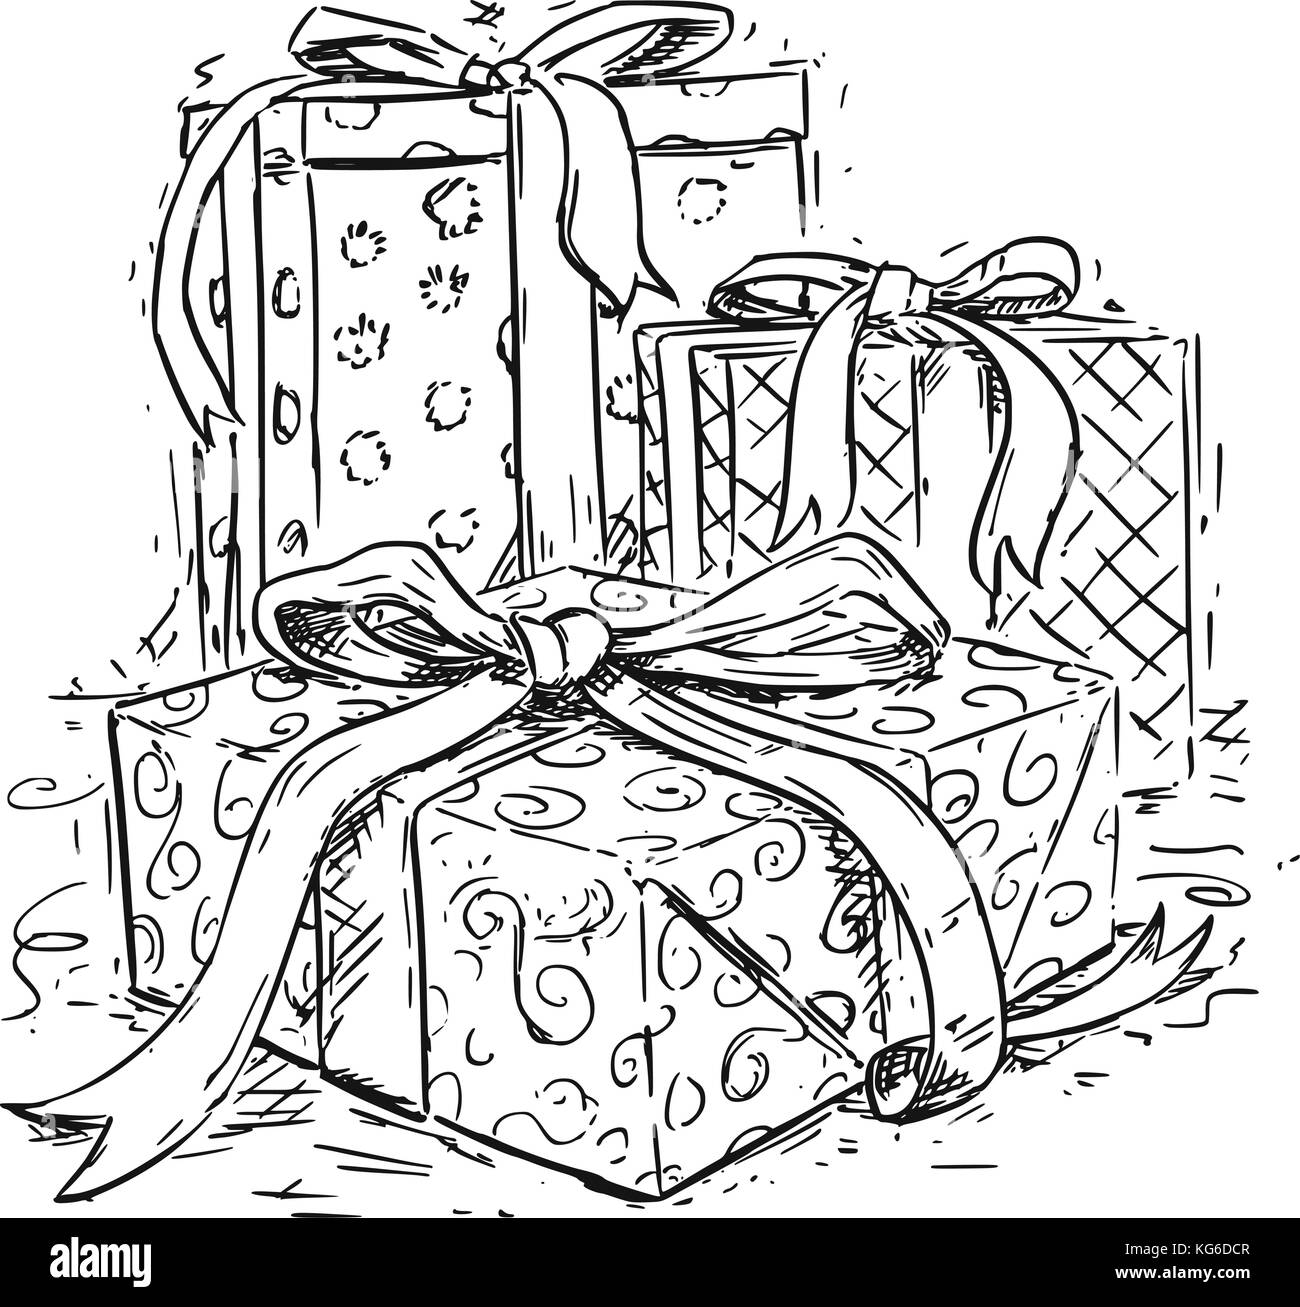 Vector Drawing Illustration Of Three Christmas Gift Boxes With Ribbon And Decorative Wrap